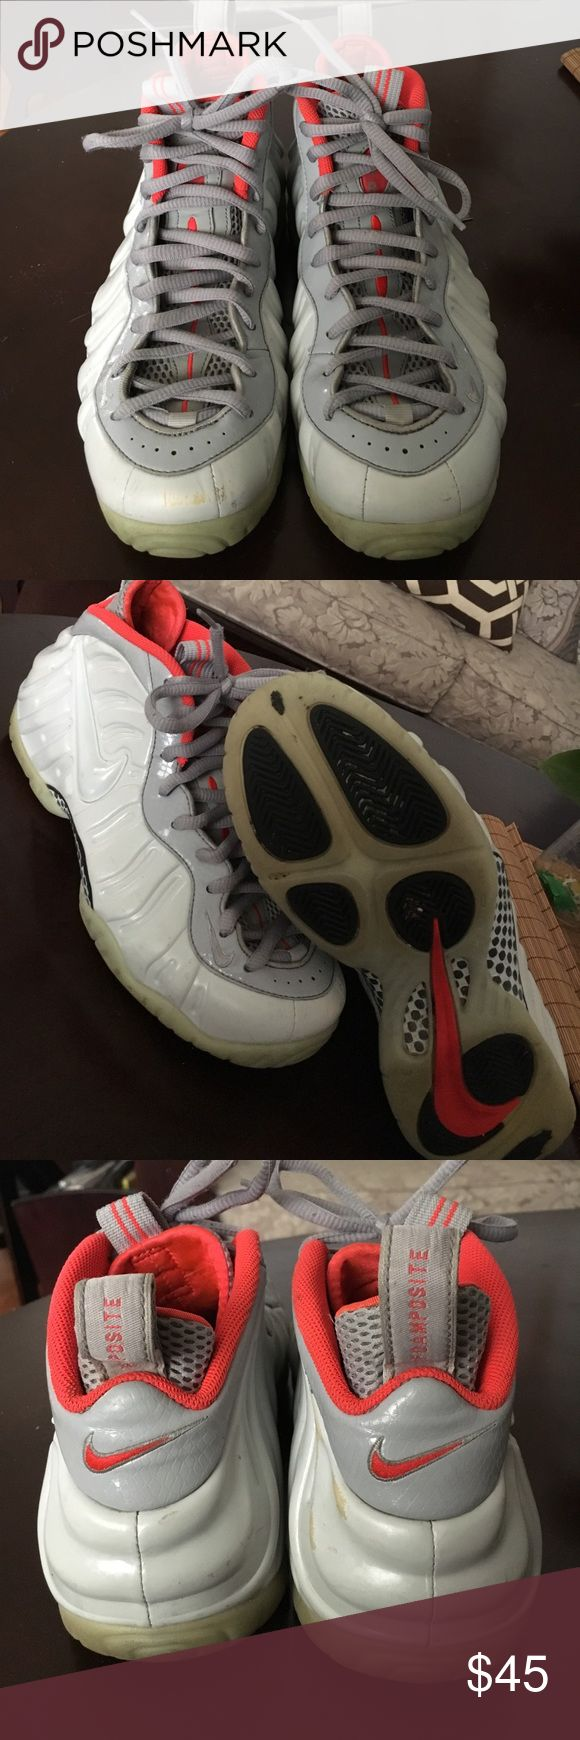 Nike Platinum Yeezy Foamposite Nike Platinum Yeezy Foamposite (soles glow in dark) . Size 8.5. Condition 7.5/10. No box and Scuffs on right shoe. Nike Shoes Sneakers